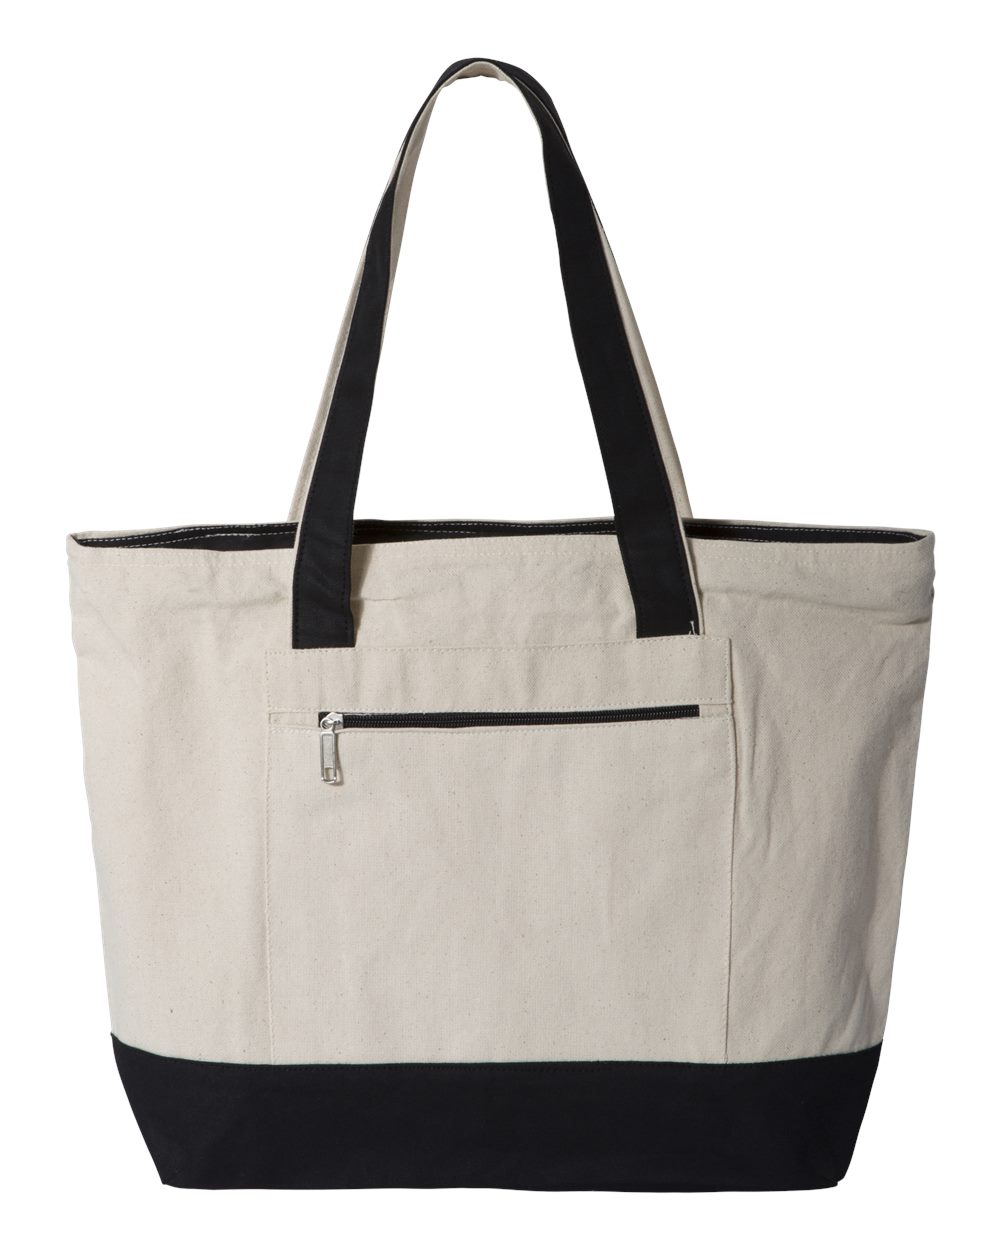 Q-Tees Q1300 - 18.6L Canvas Zipper Tote